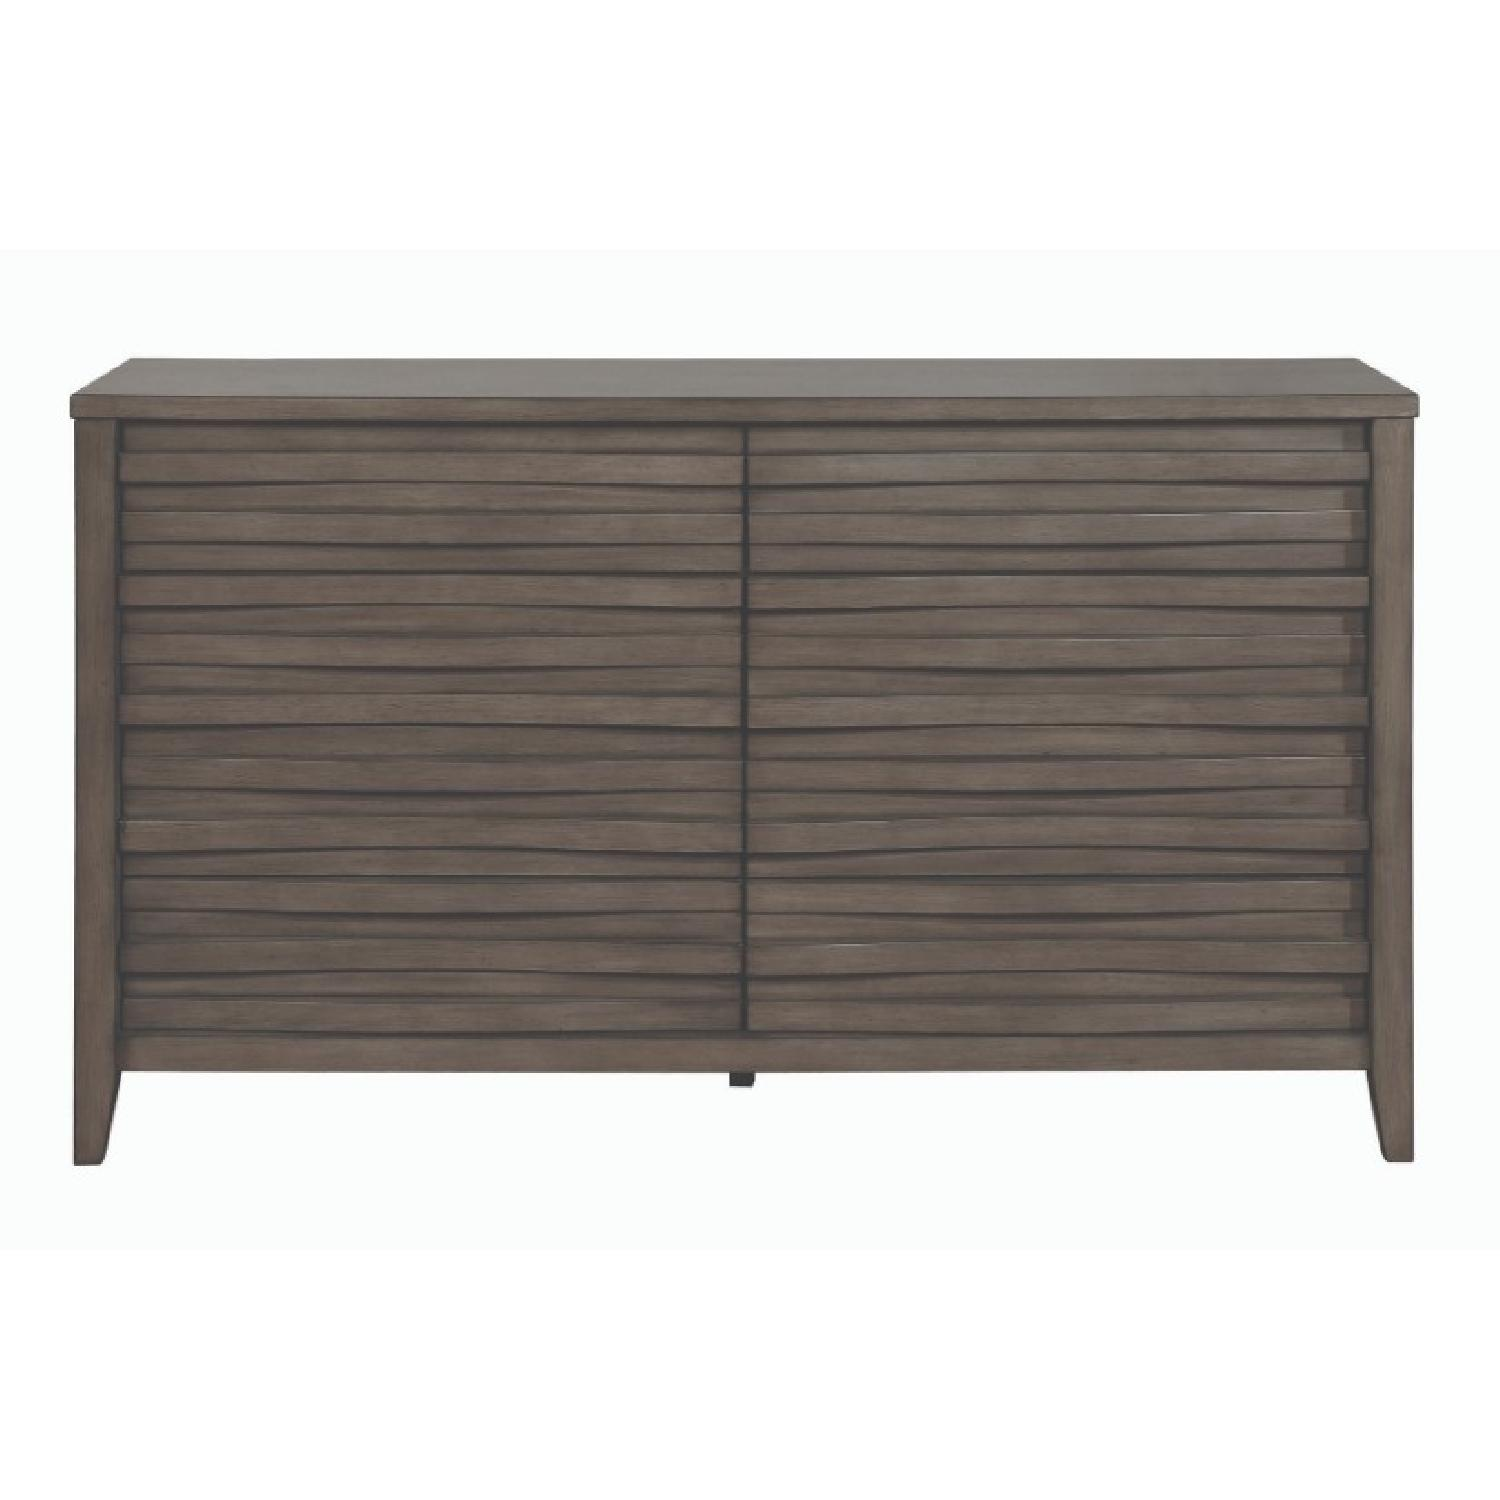 Queen Bed in Dark Taupe w/ 2 Storage Drawers - image-8